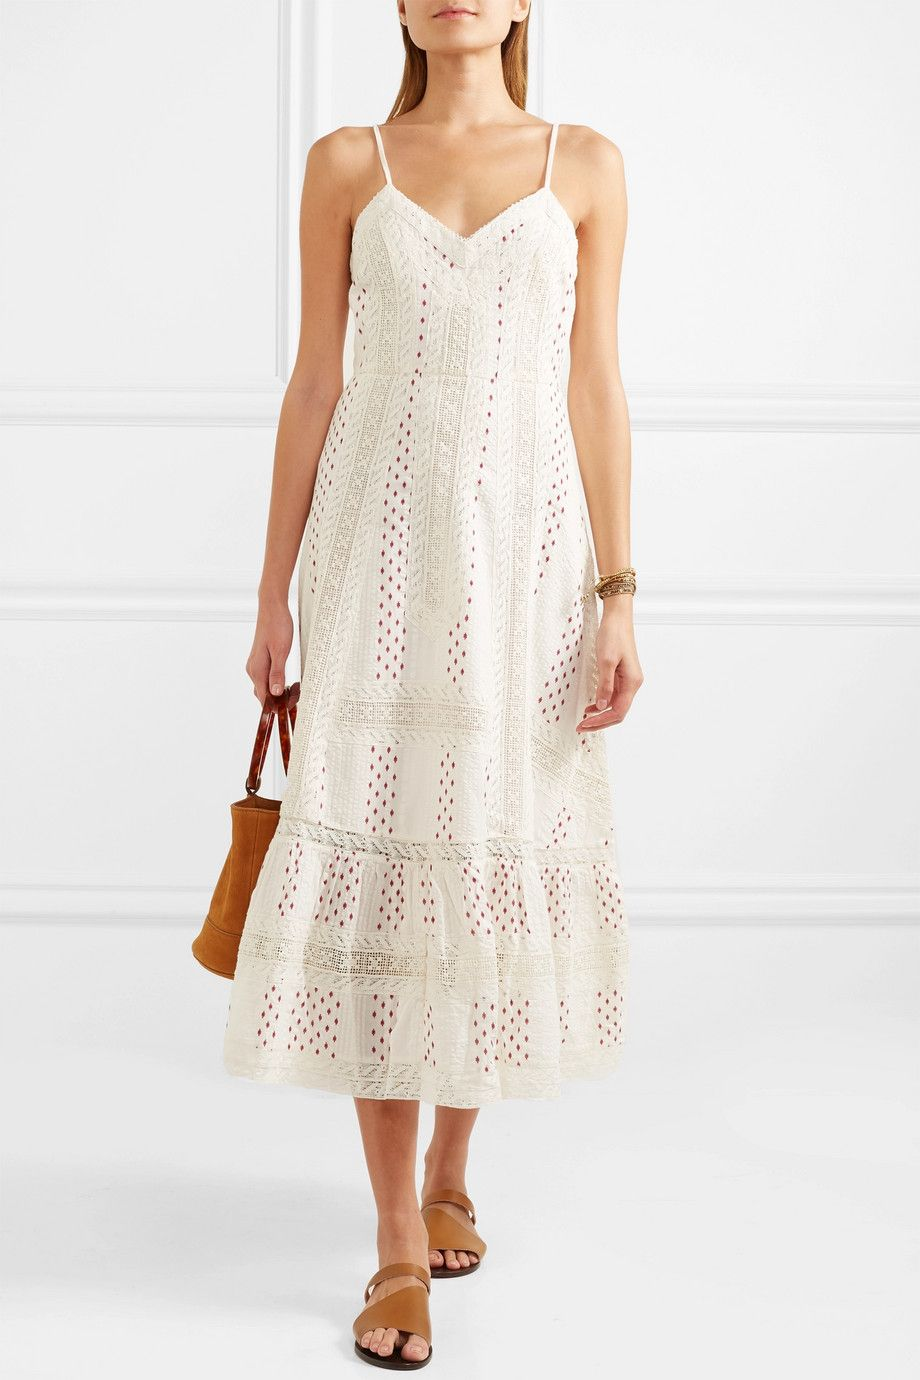 Marlow Crocheted Lace-trimmed Printed Cotton Midi Dress - Ivory LoveShackFancy MqIoTGAaXN